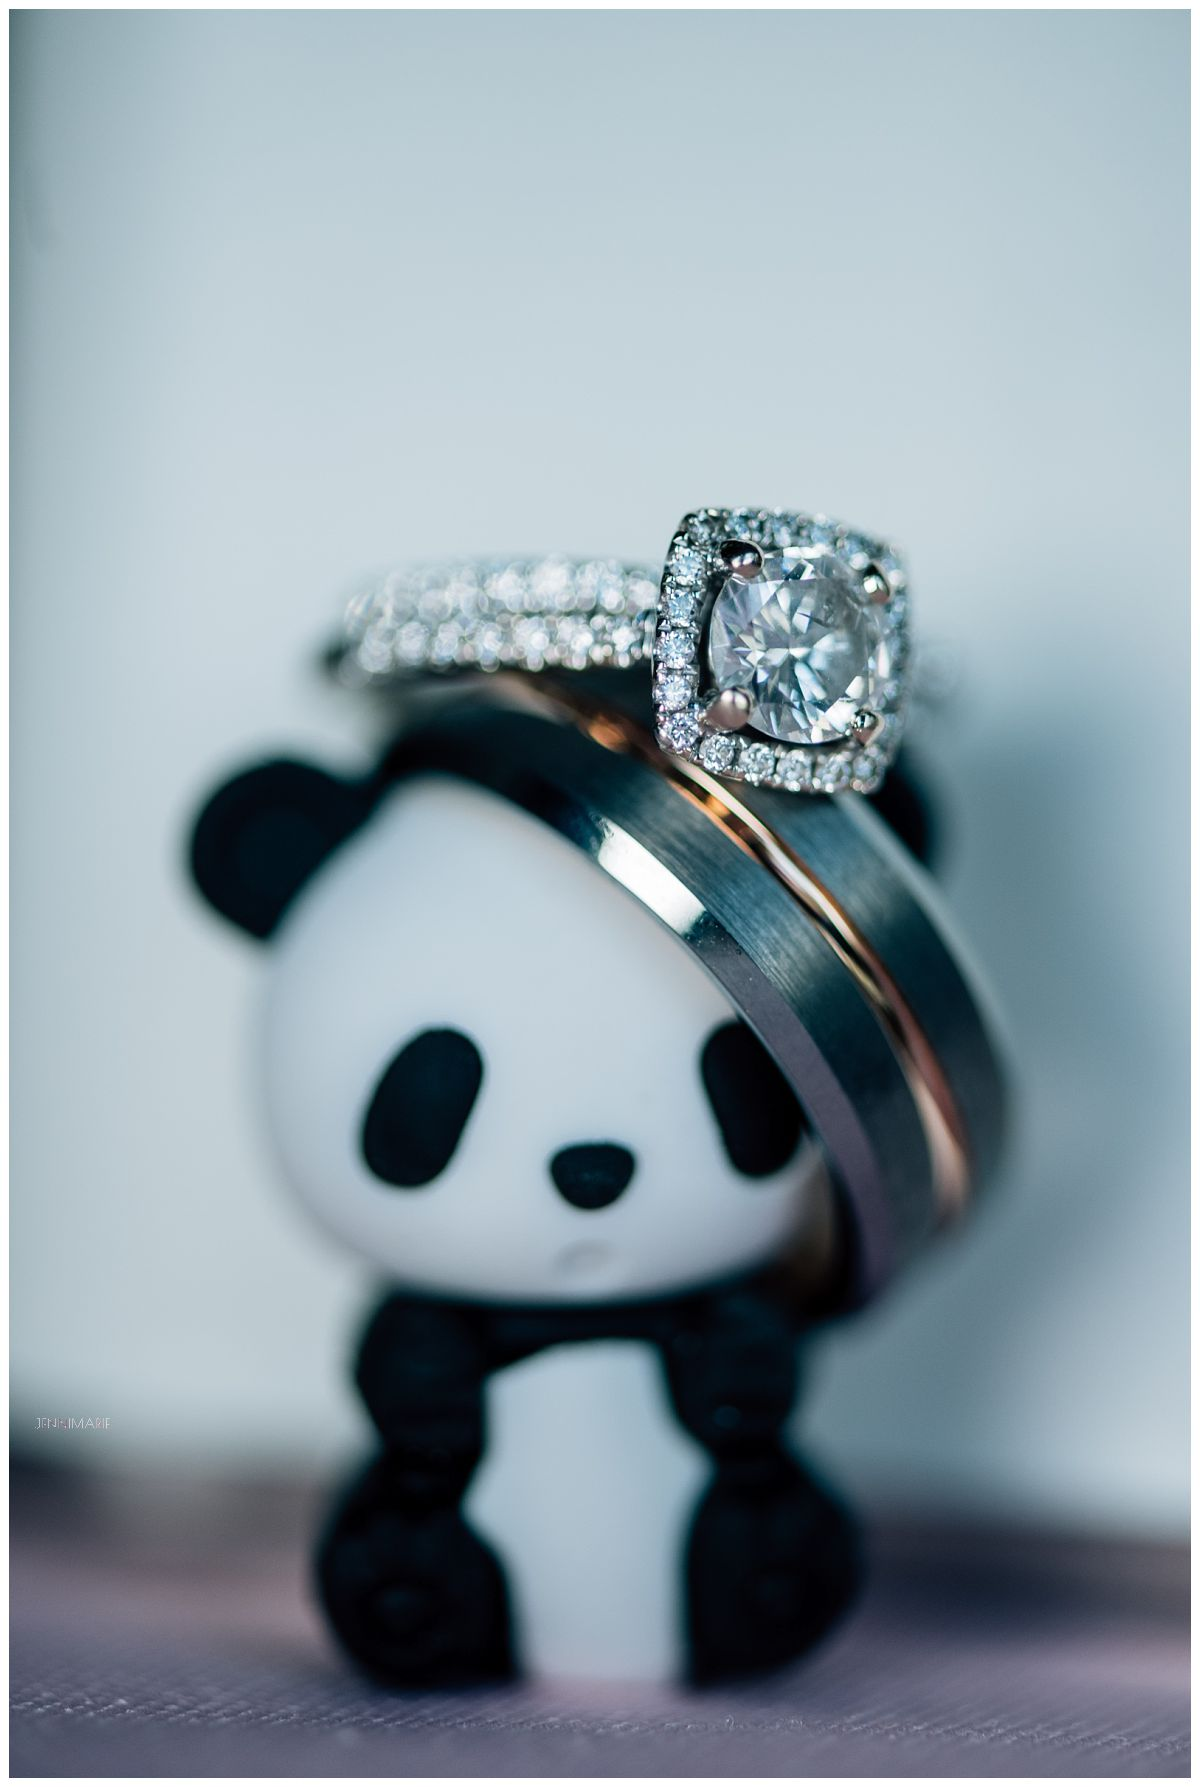 panda bear with wedding ring